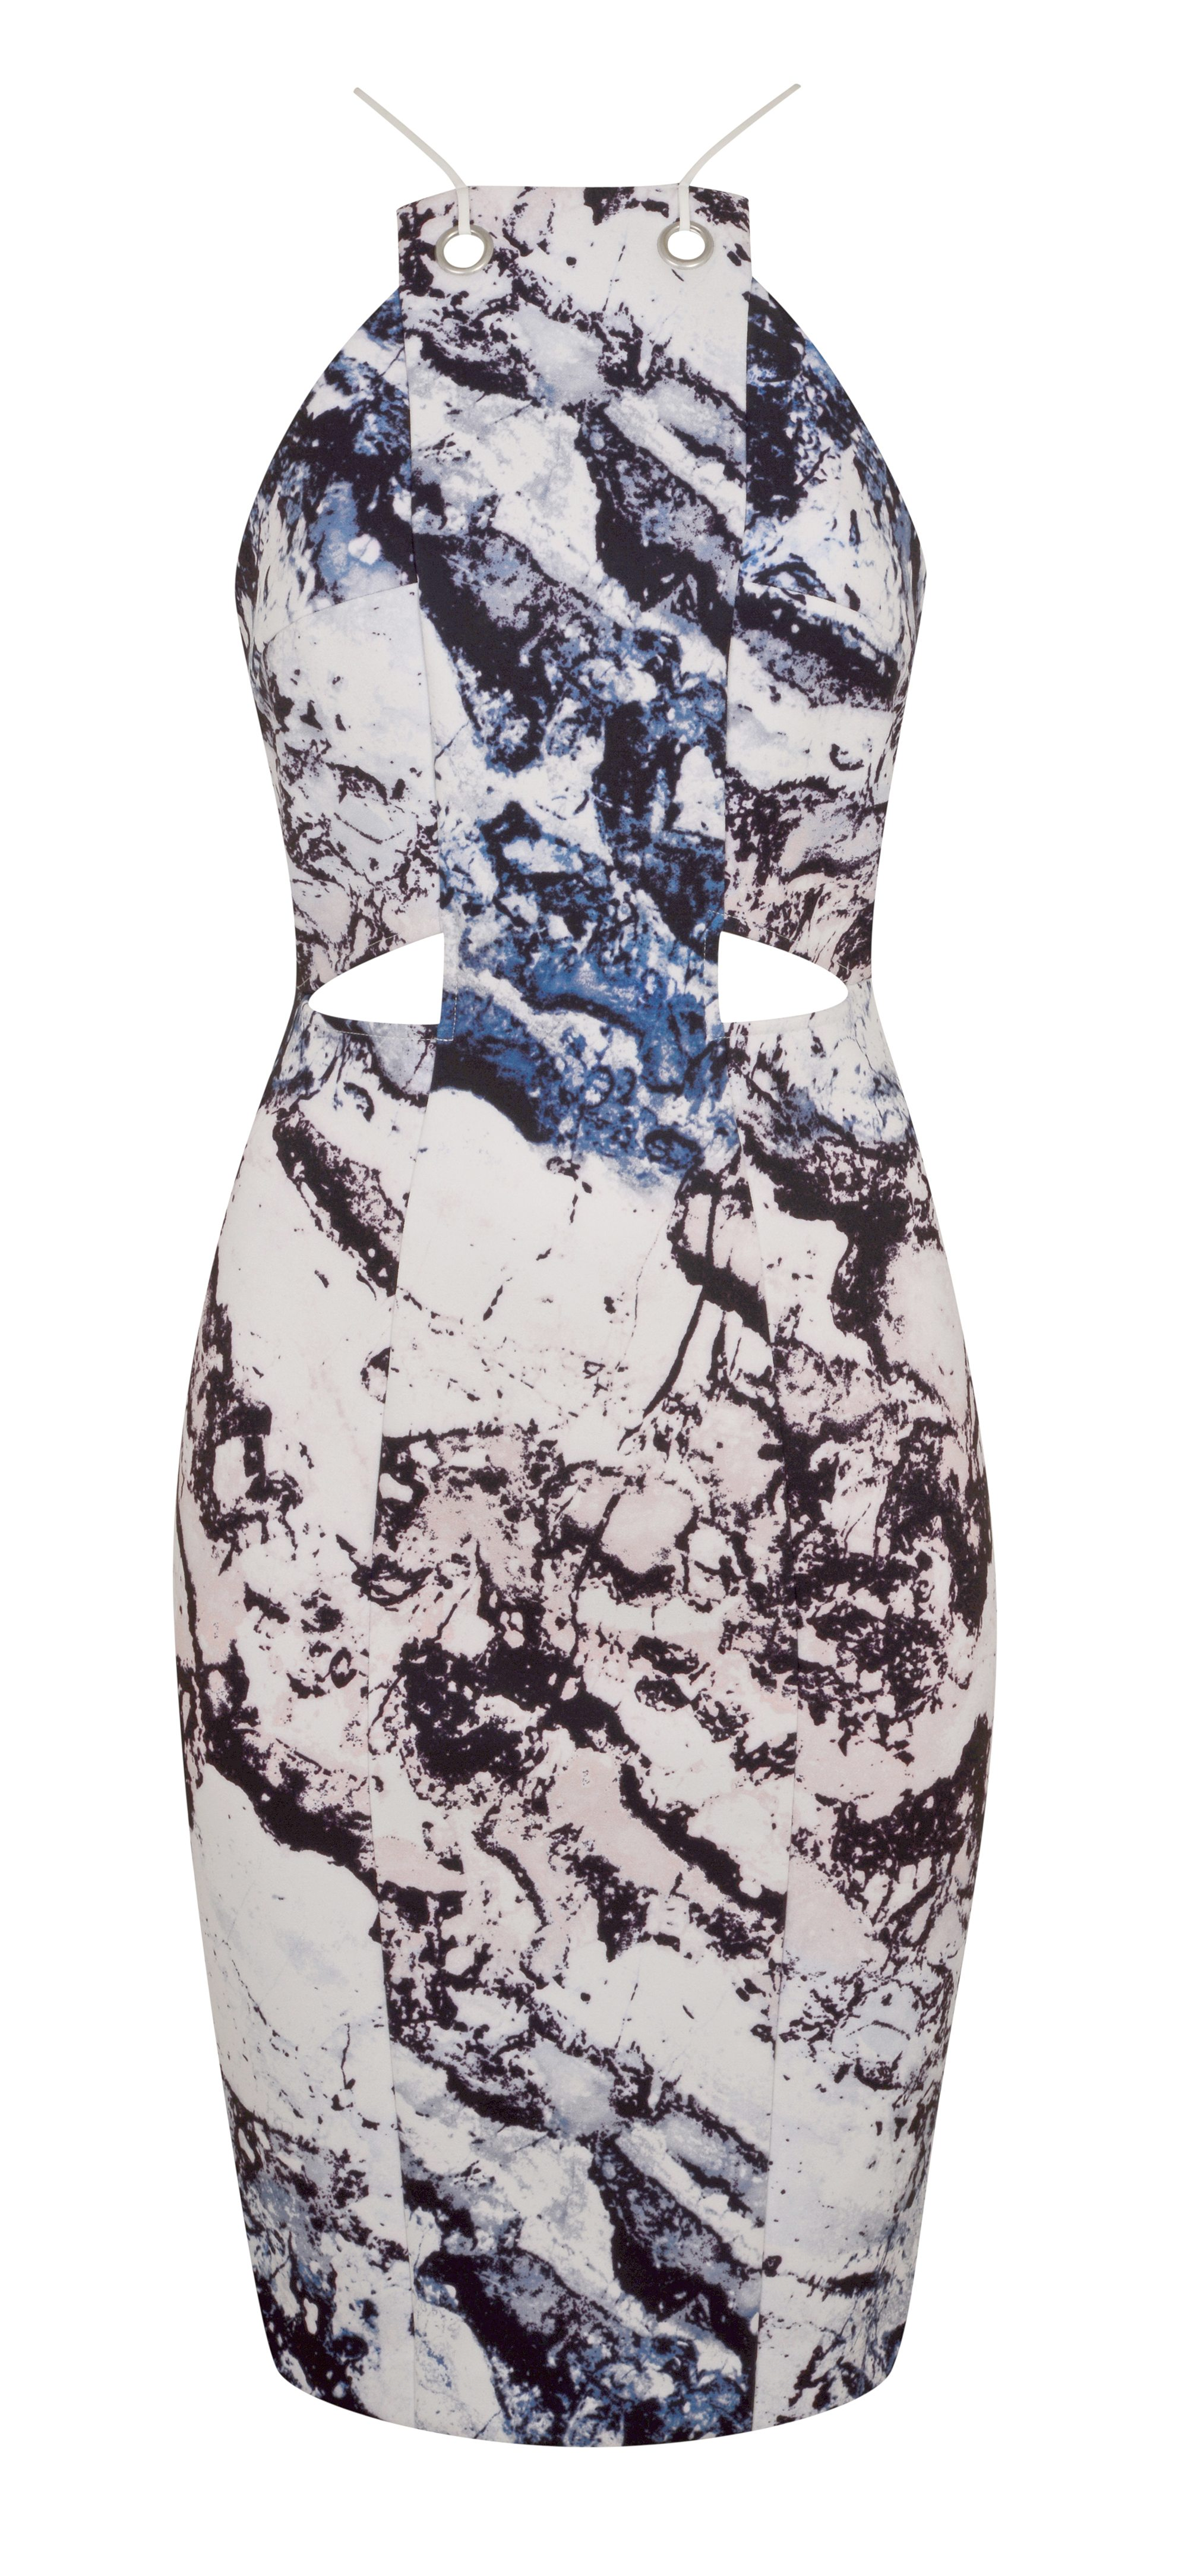 K+K Cut Out Printed Dress, $125 CAD